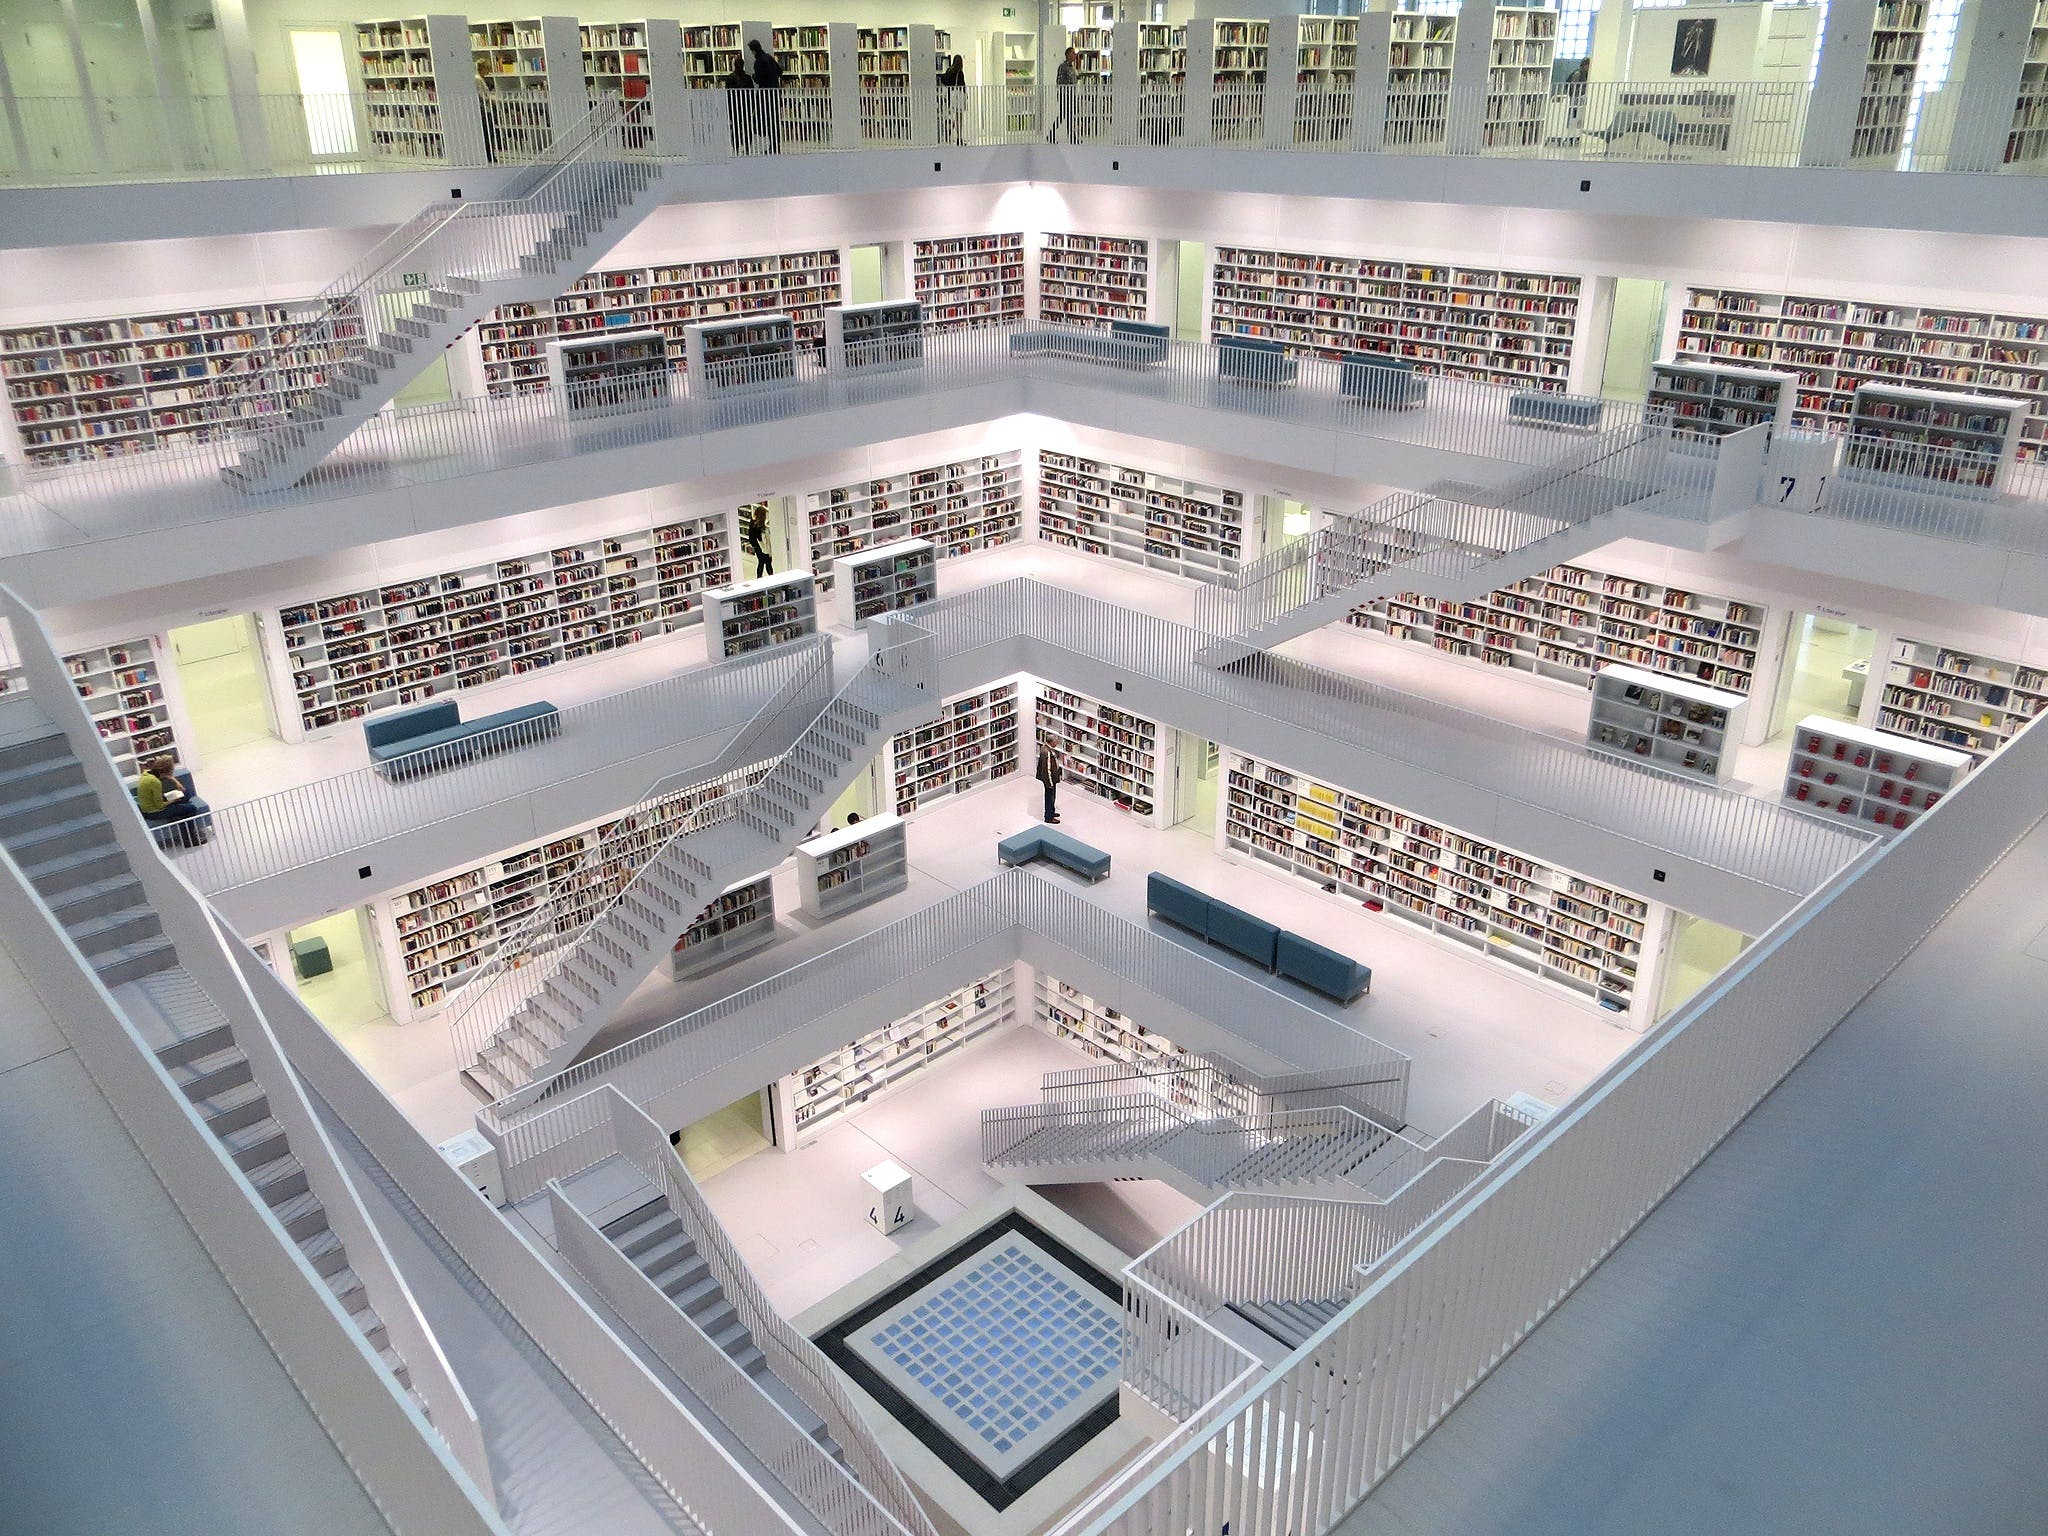 White Concrete Tall Building With Books